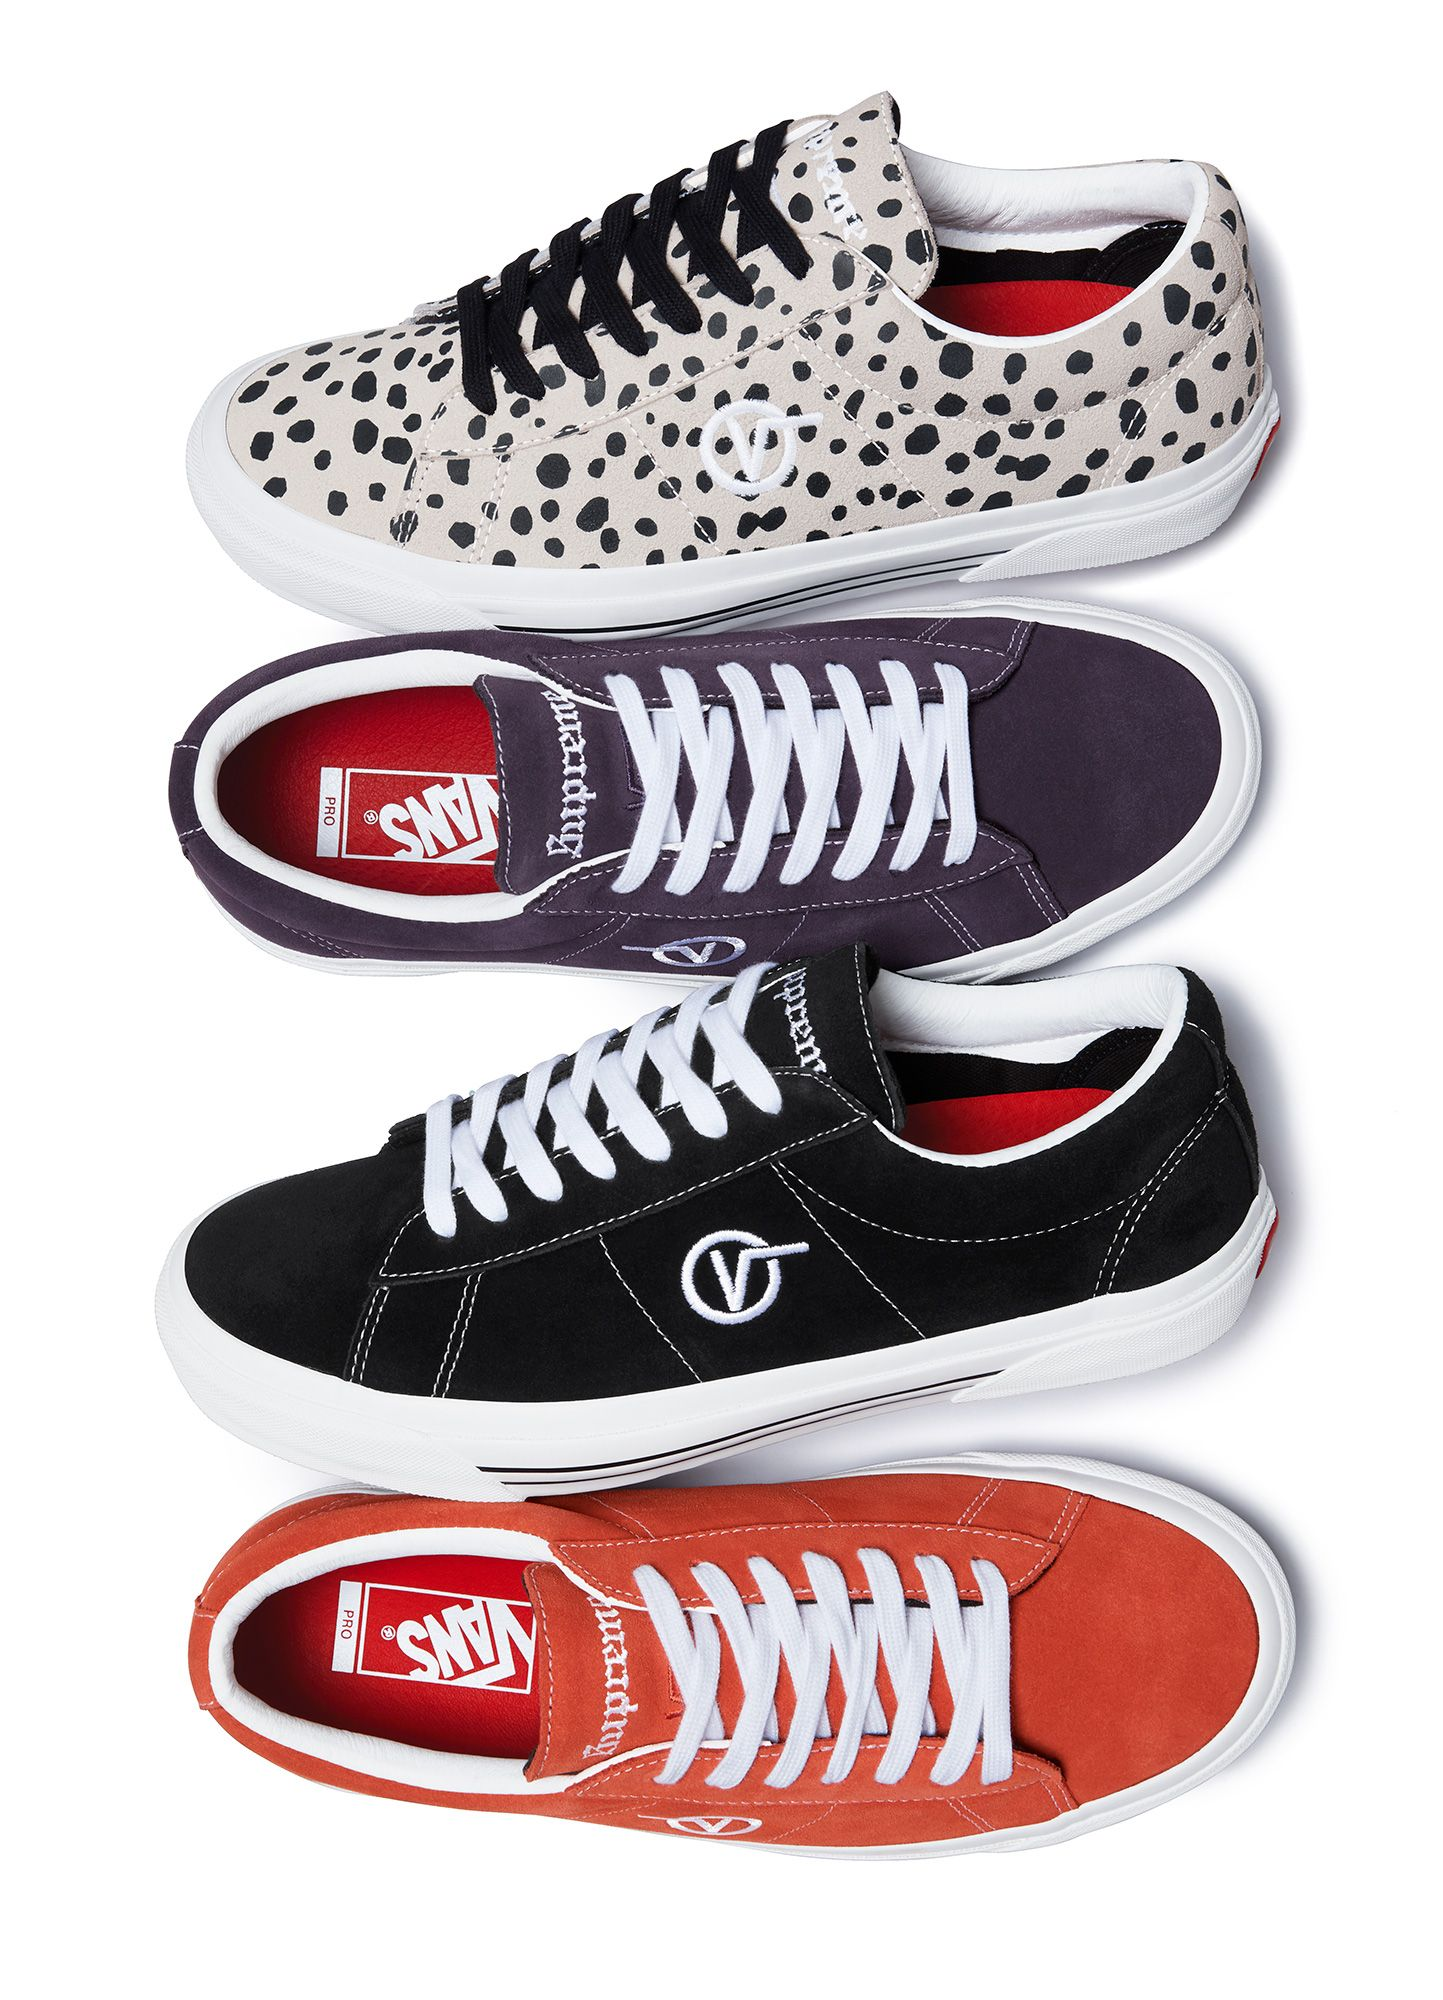 08165a6a43 The Latest Supreme x Vans Collab Is Almost Here